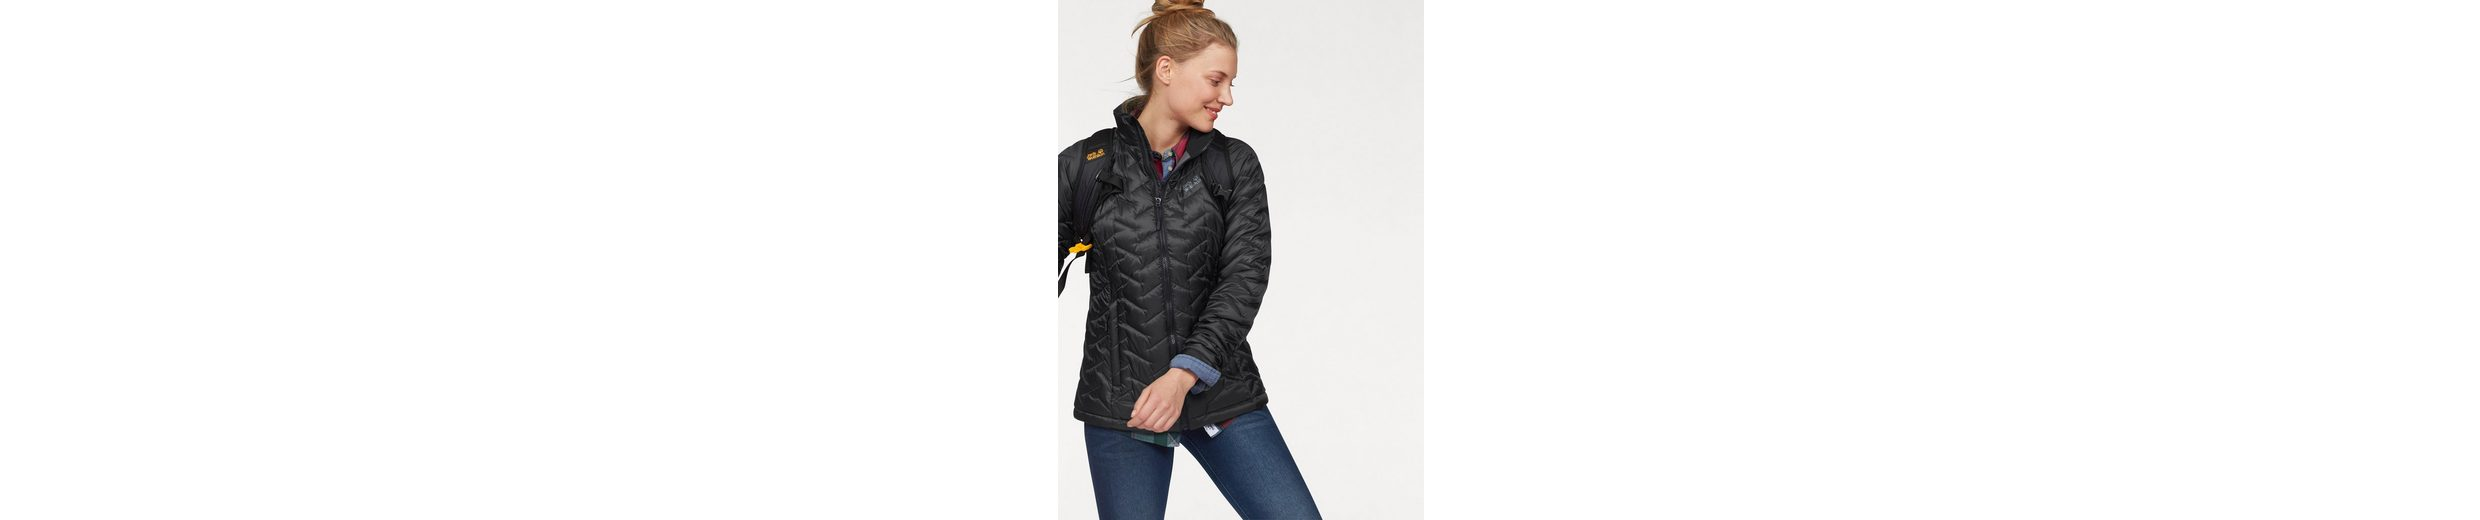 Jack Wolfskin Steppjacke ICY CREEK WOMEN, warm wattierte Übergangsjacke